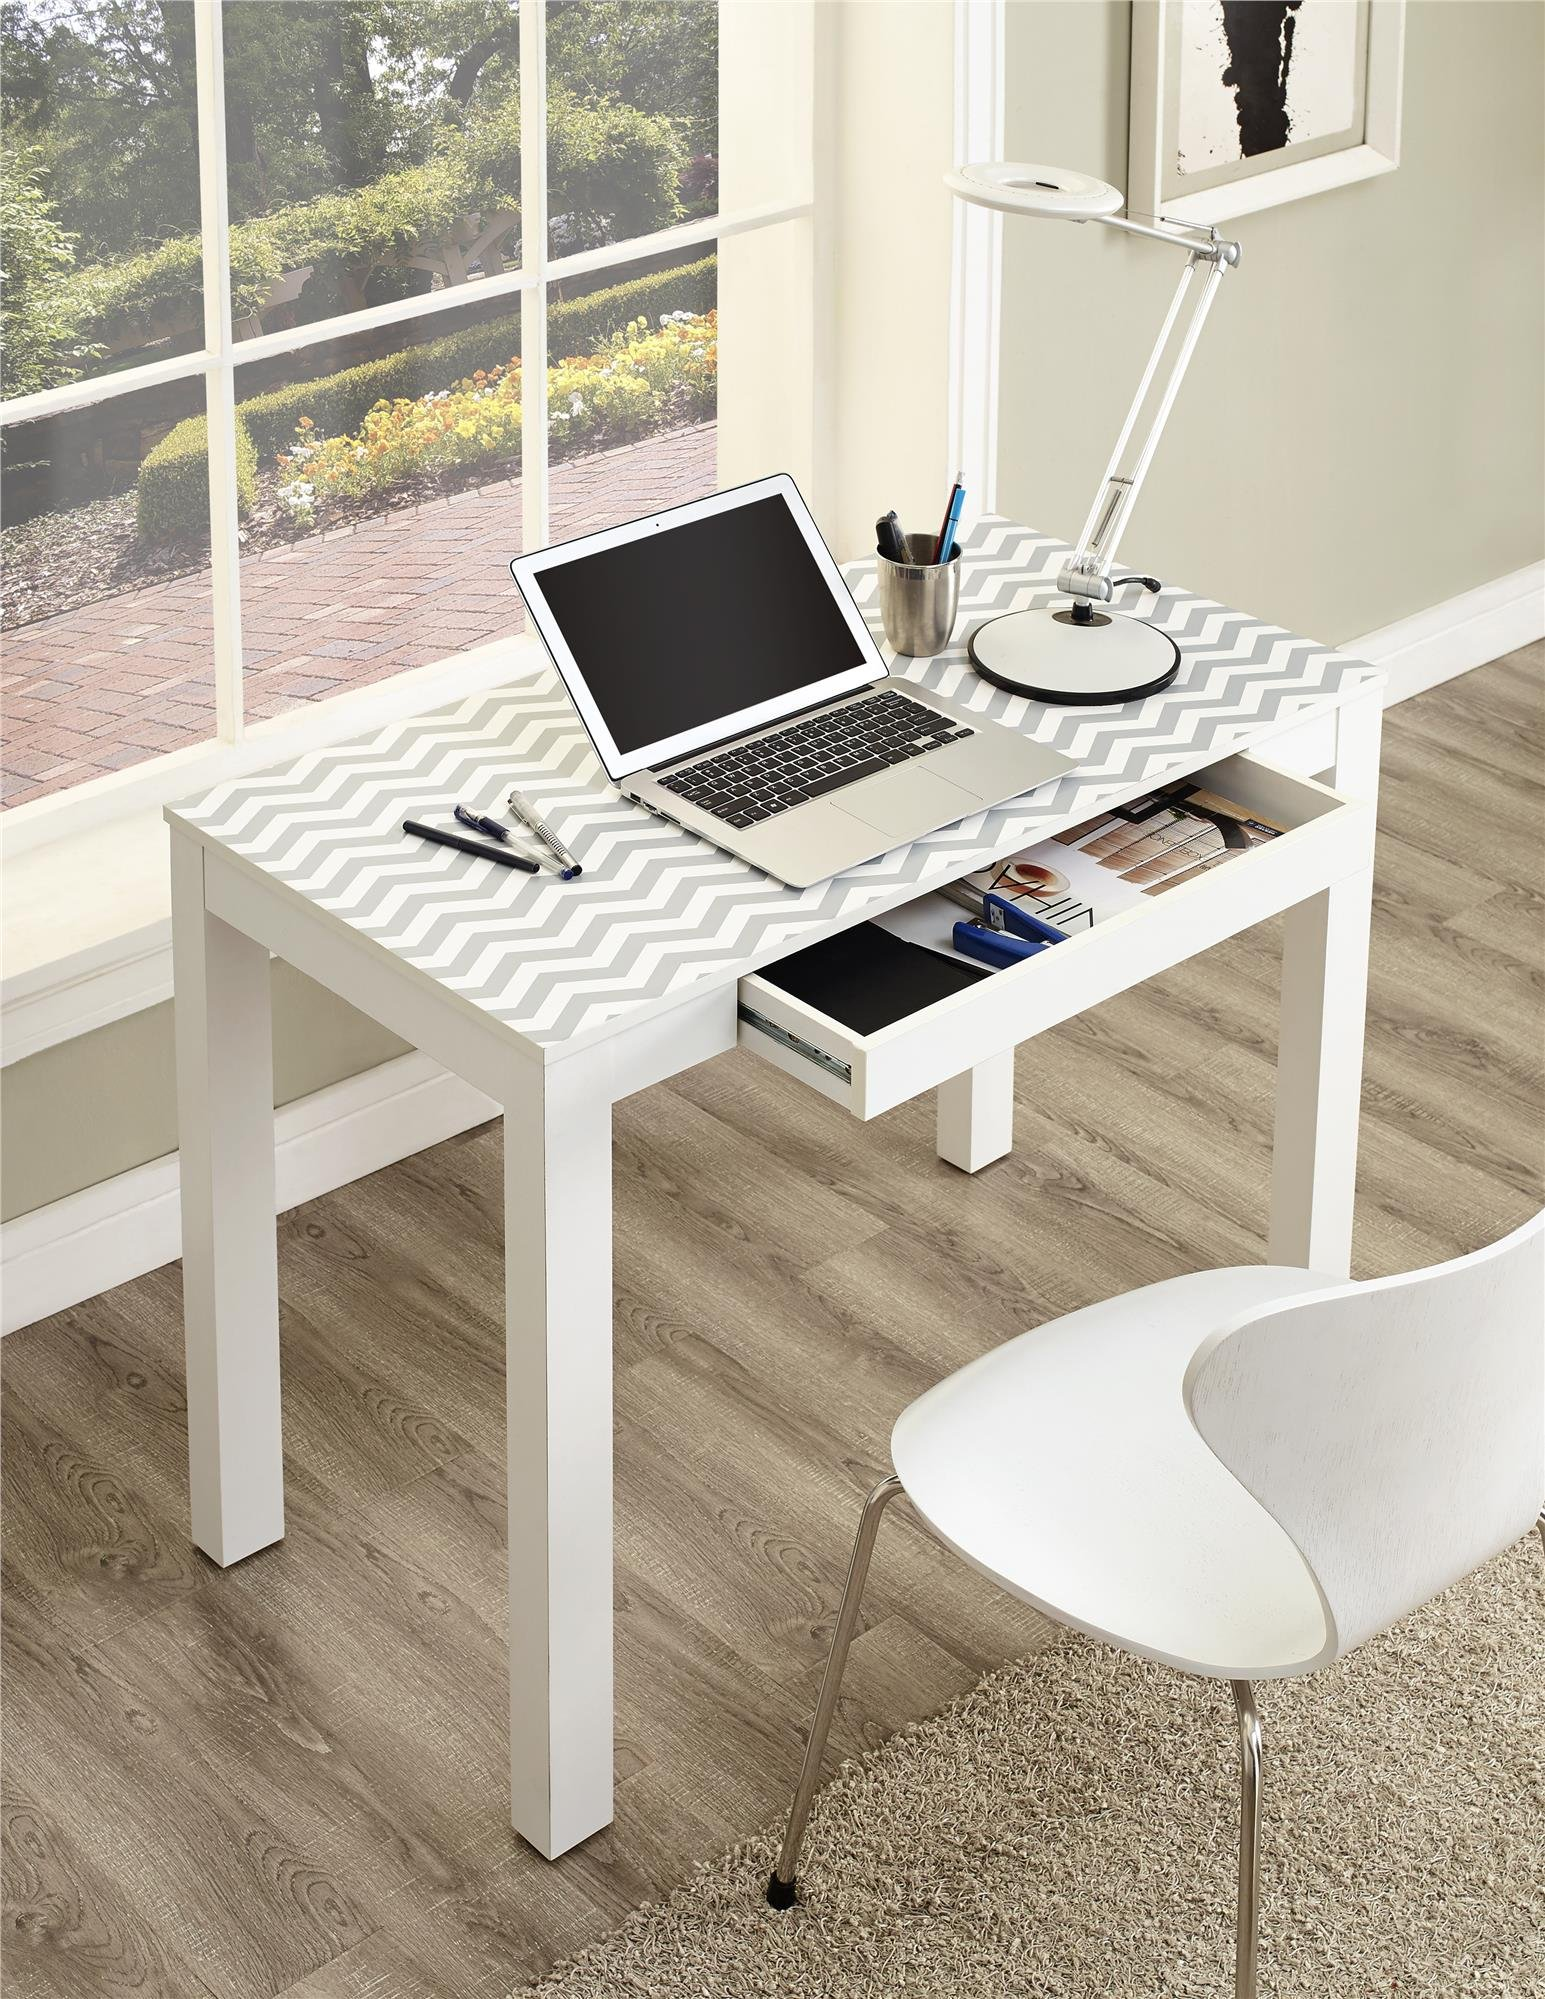 Ameriwood Home Parsons Desk Drawer, White/Gray Chevron by Ameriwood Home (Image #9)